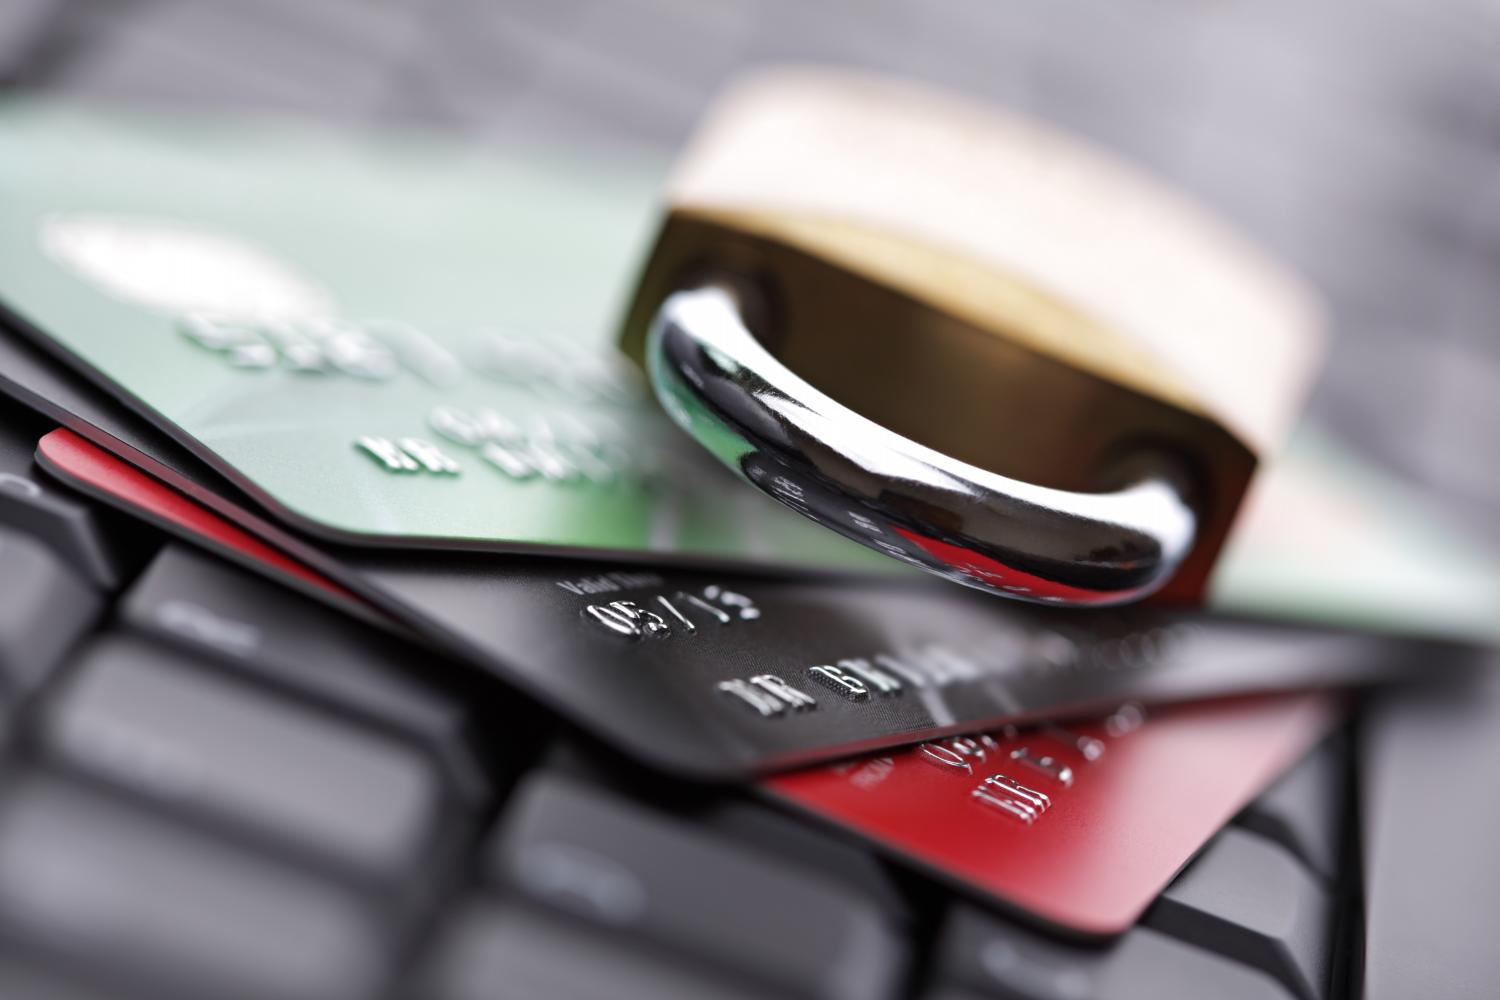 Consumer credit reporting agency Equifax said a breach of its computer systems had exposed the Social Security numbers and birthdates of up to 143 million U.S. consumers. (Dreamstime/TNS)